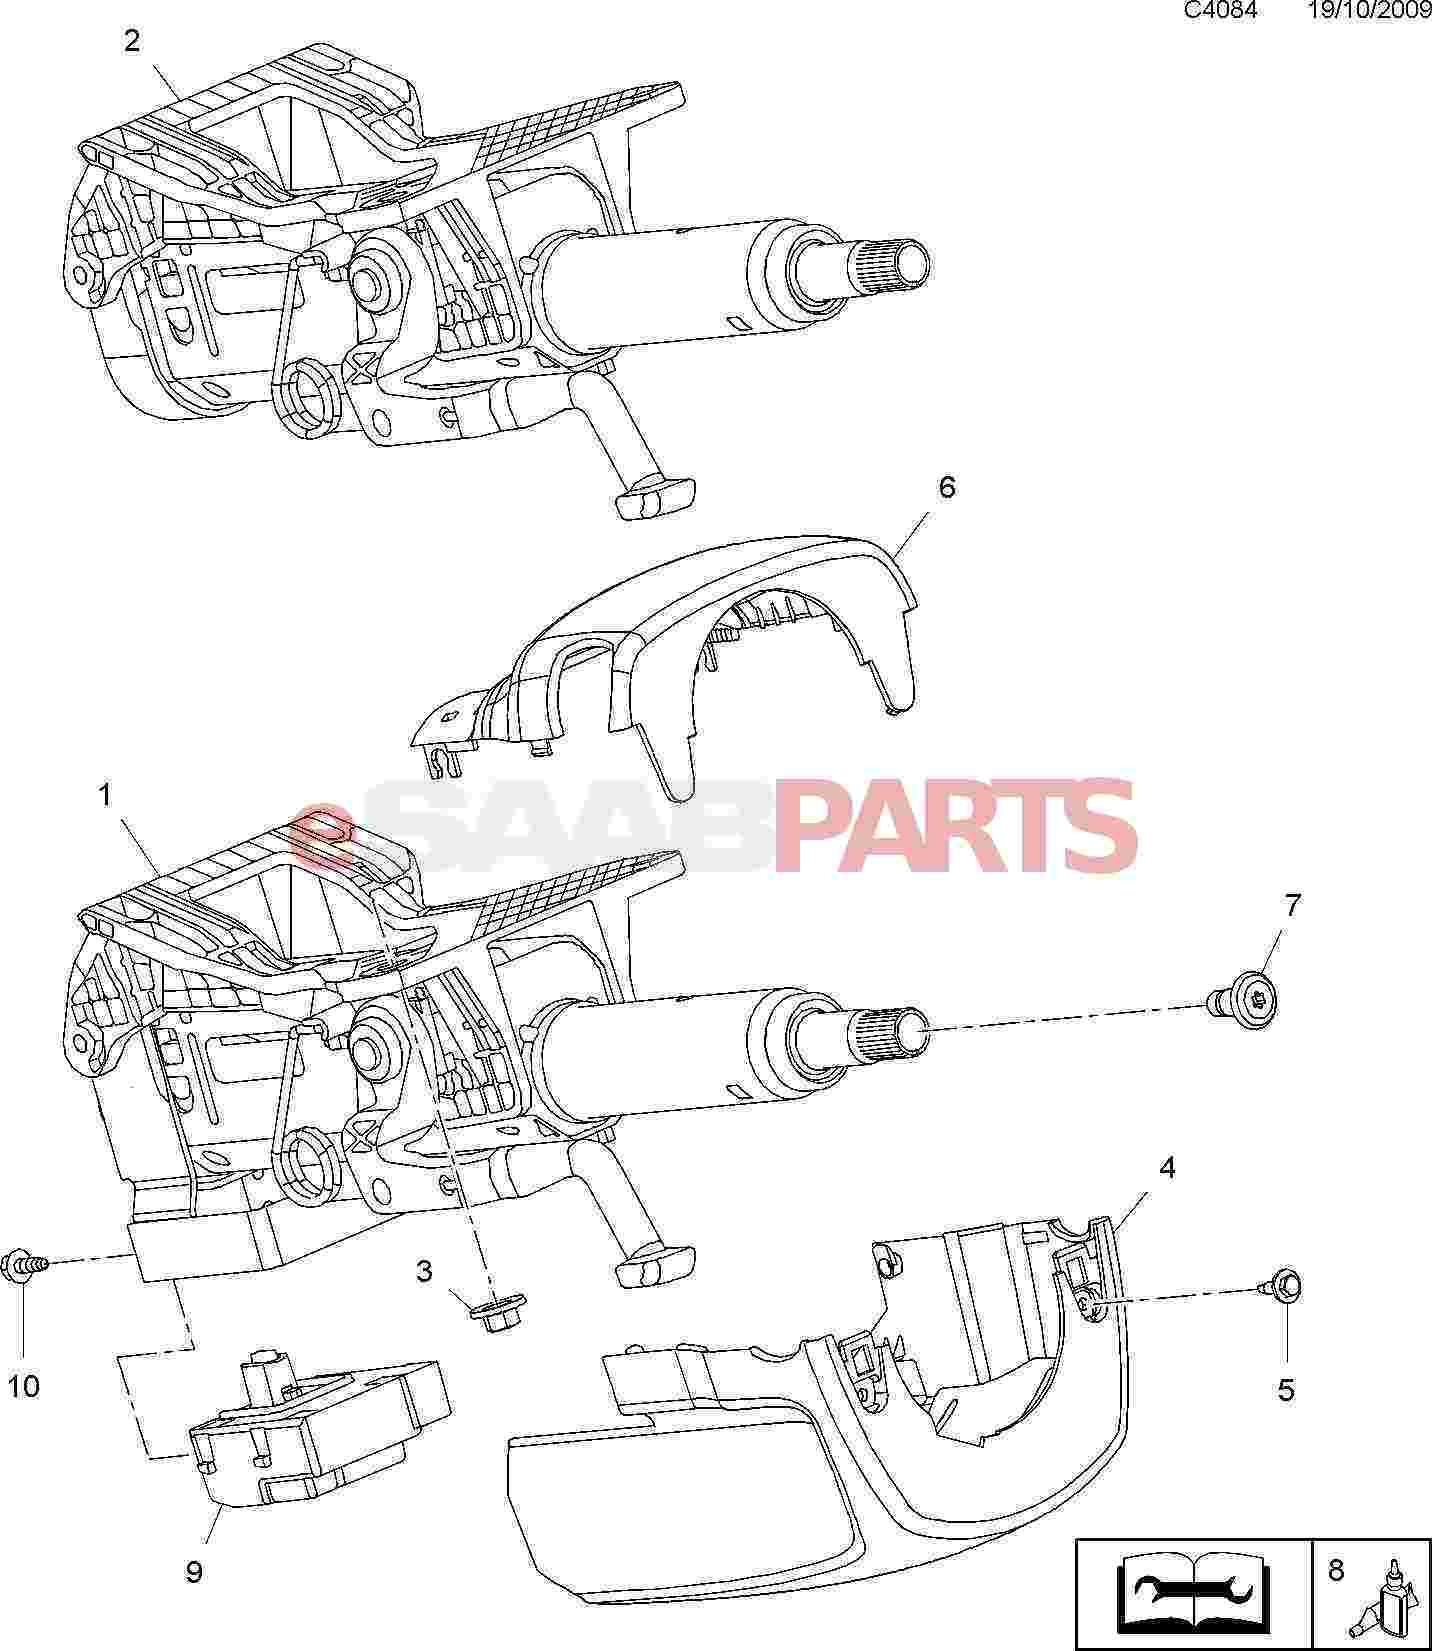 Service manual [2009 Saab 9 7x Remove Engine Assembly